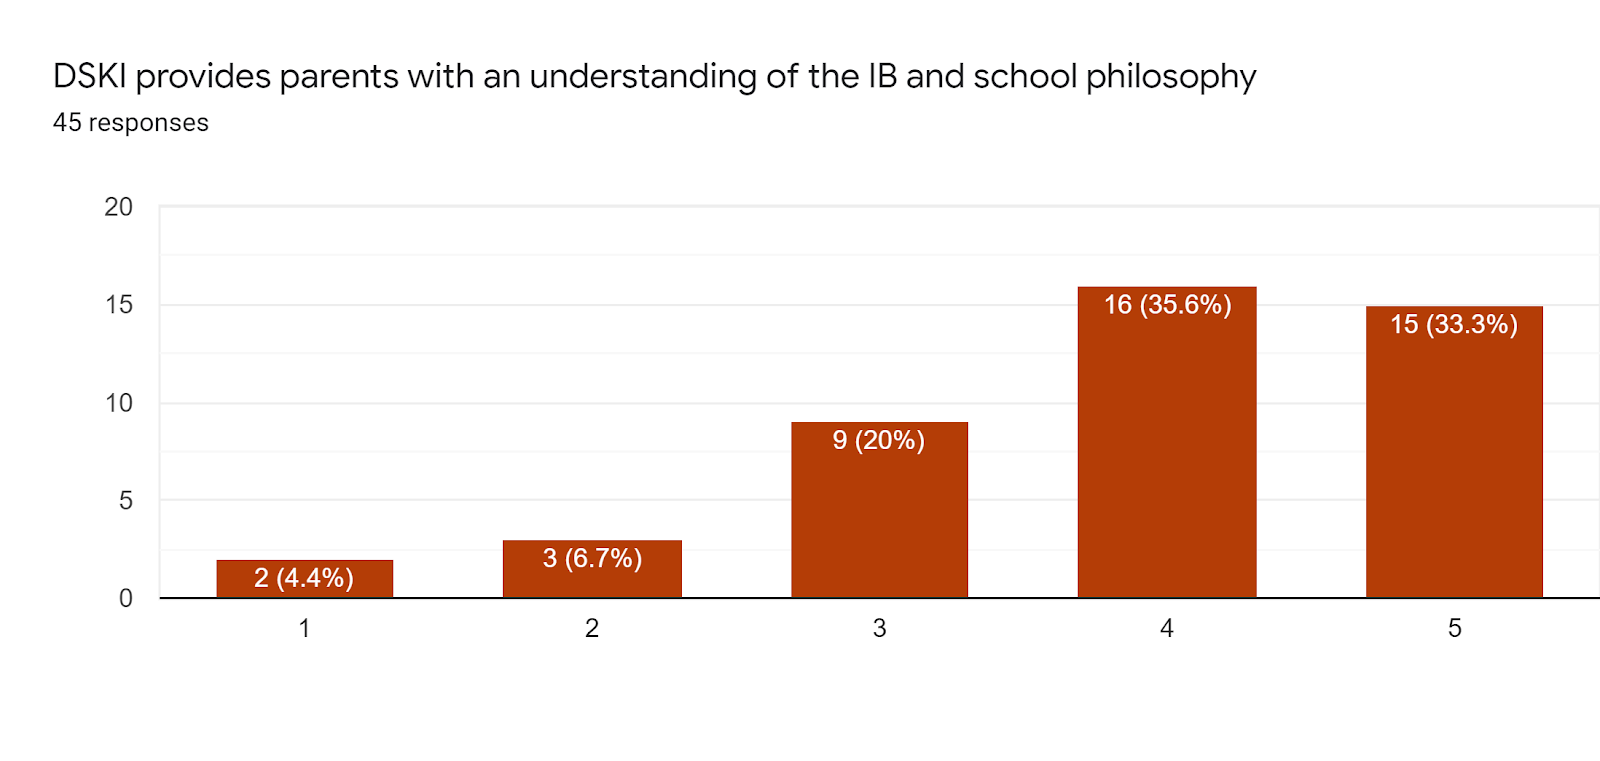 Forms response chart. Question title: DSKI provides parents with an understanding of the IB and school philosophy. Number of responses: 45 responses.